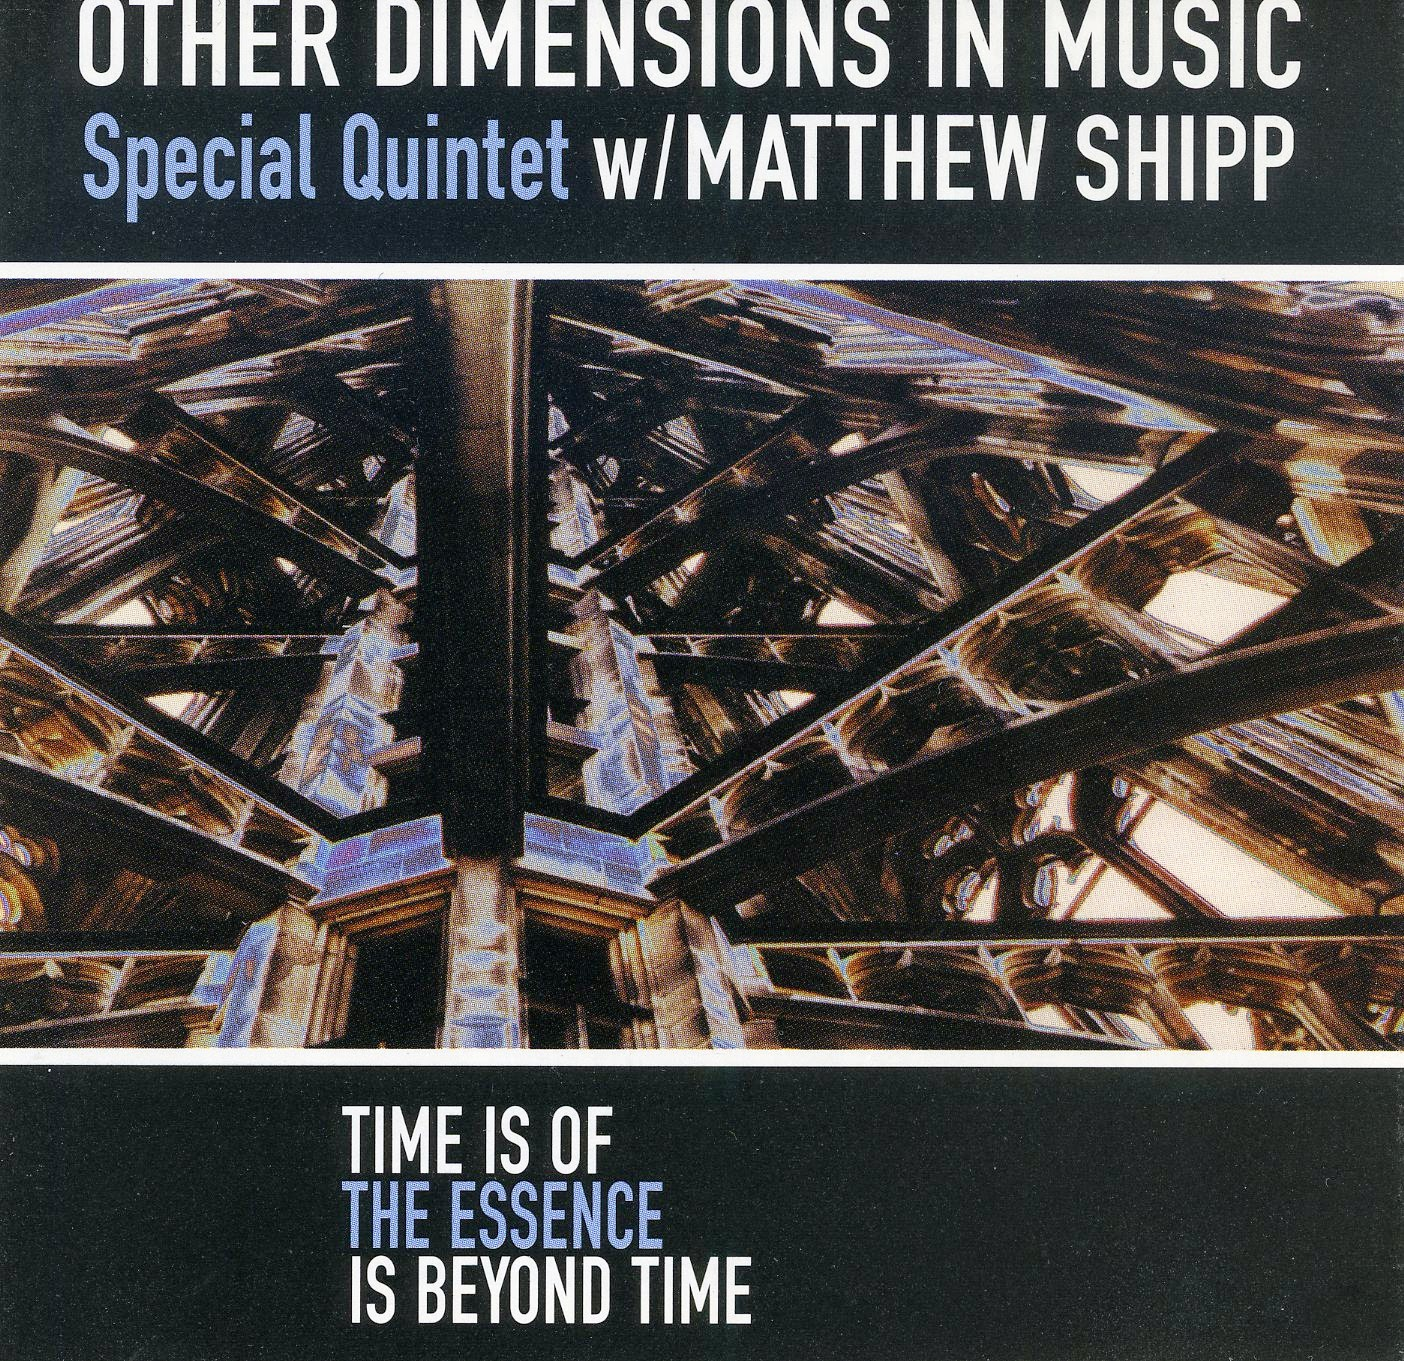 Other Dimensions In Music - Other Dimensions In Music